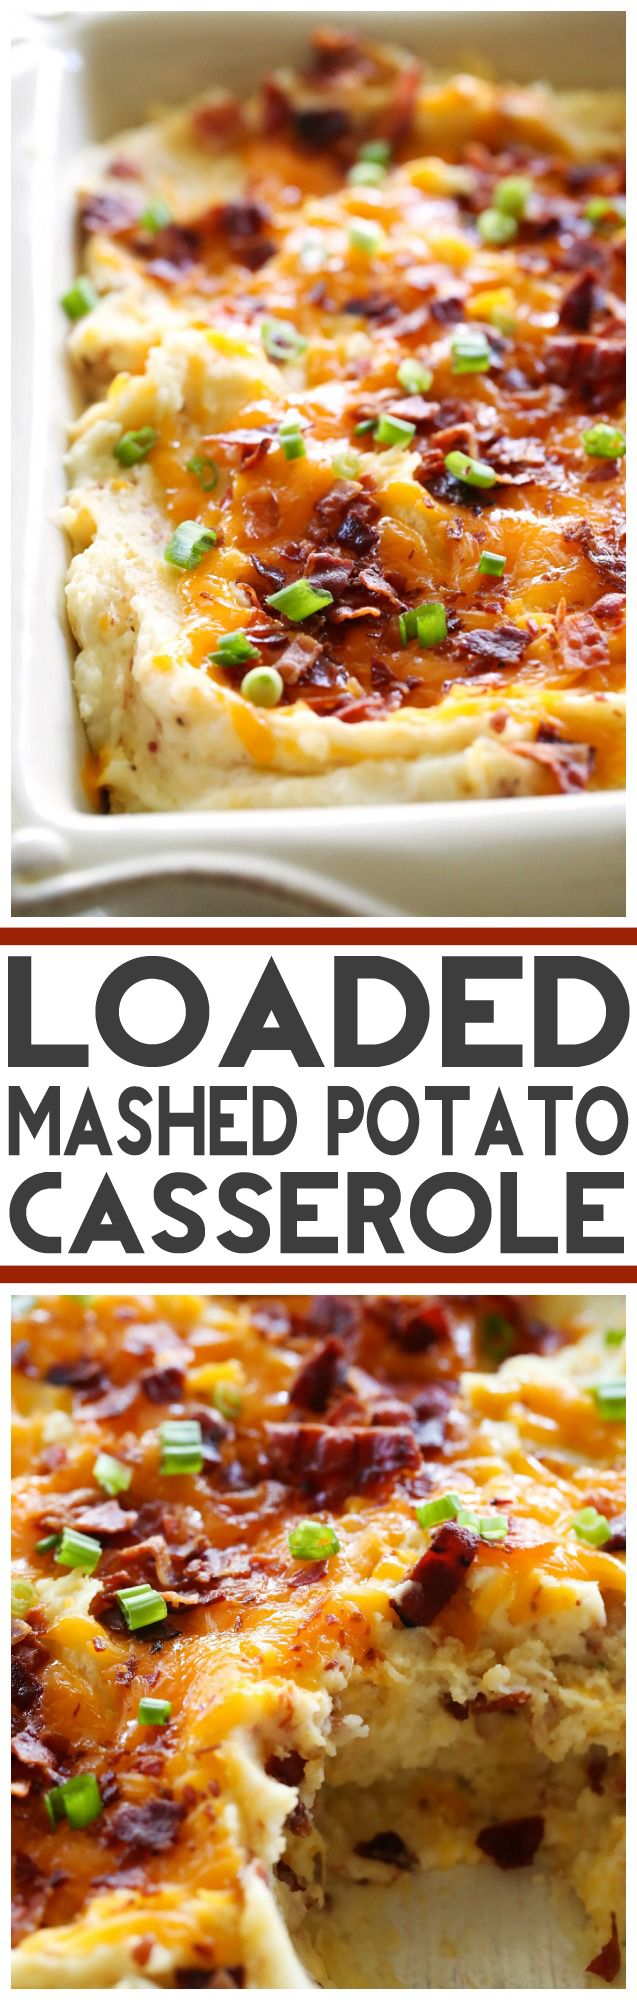 glasses for sale online Loaded Mashed Potato Casserole    This recipe takes mashed potatoes to a whole new delicious level  These potatoes will be the star of the dinner table  They are my new favorite potato recipe